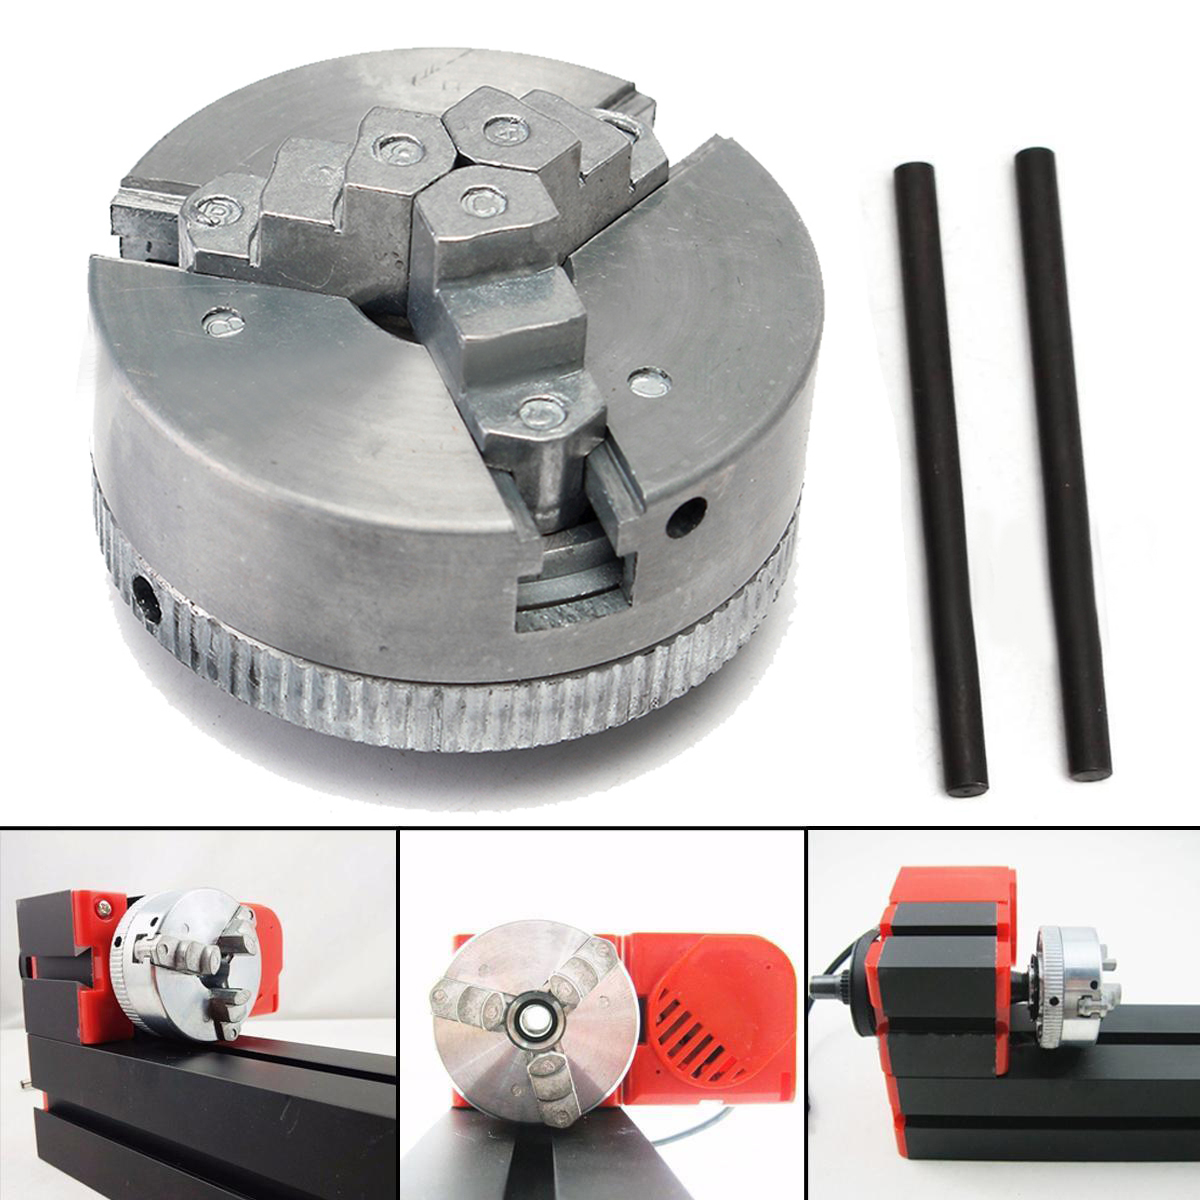 1pc 3 Jaw Lathe Chuck Metal Self Centering Hardened Chuck M12x1 45mm + 2pcs Lock Rods with Shock Resistance sen лодка чай черный чай лапсанг сушонг чай wu yishan no 1 box 144g